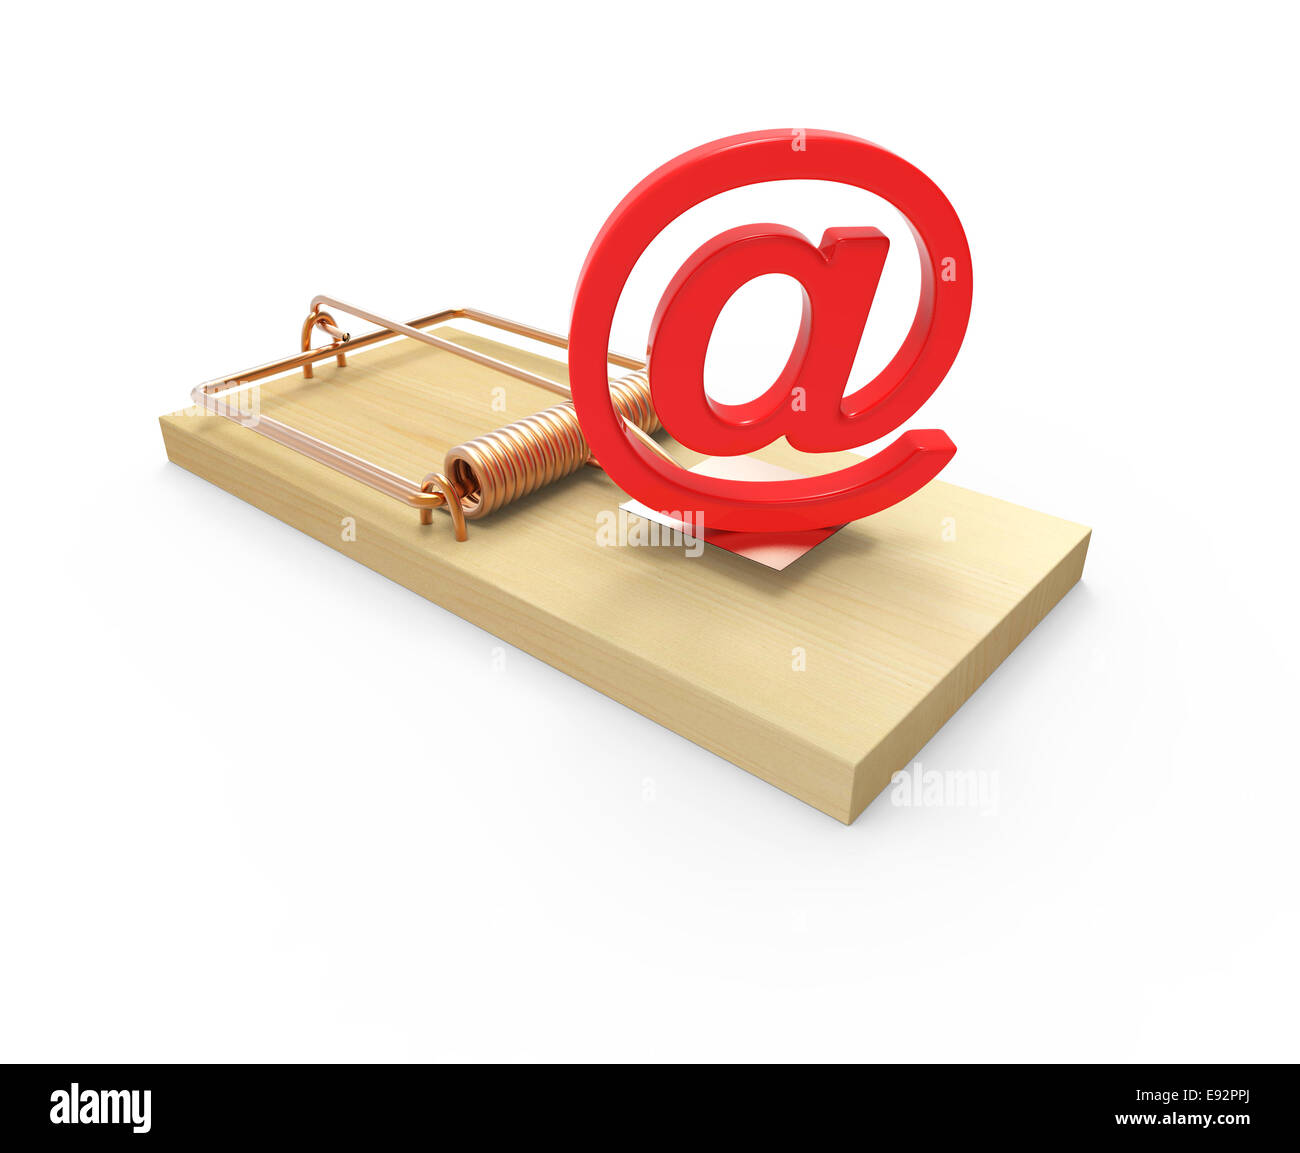 3d Render Of A Mousetrap With An Email Address Symbol As Bait Stock